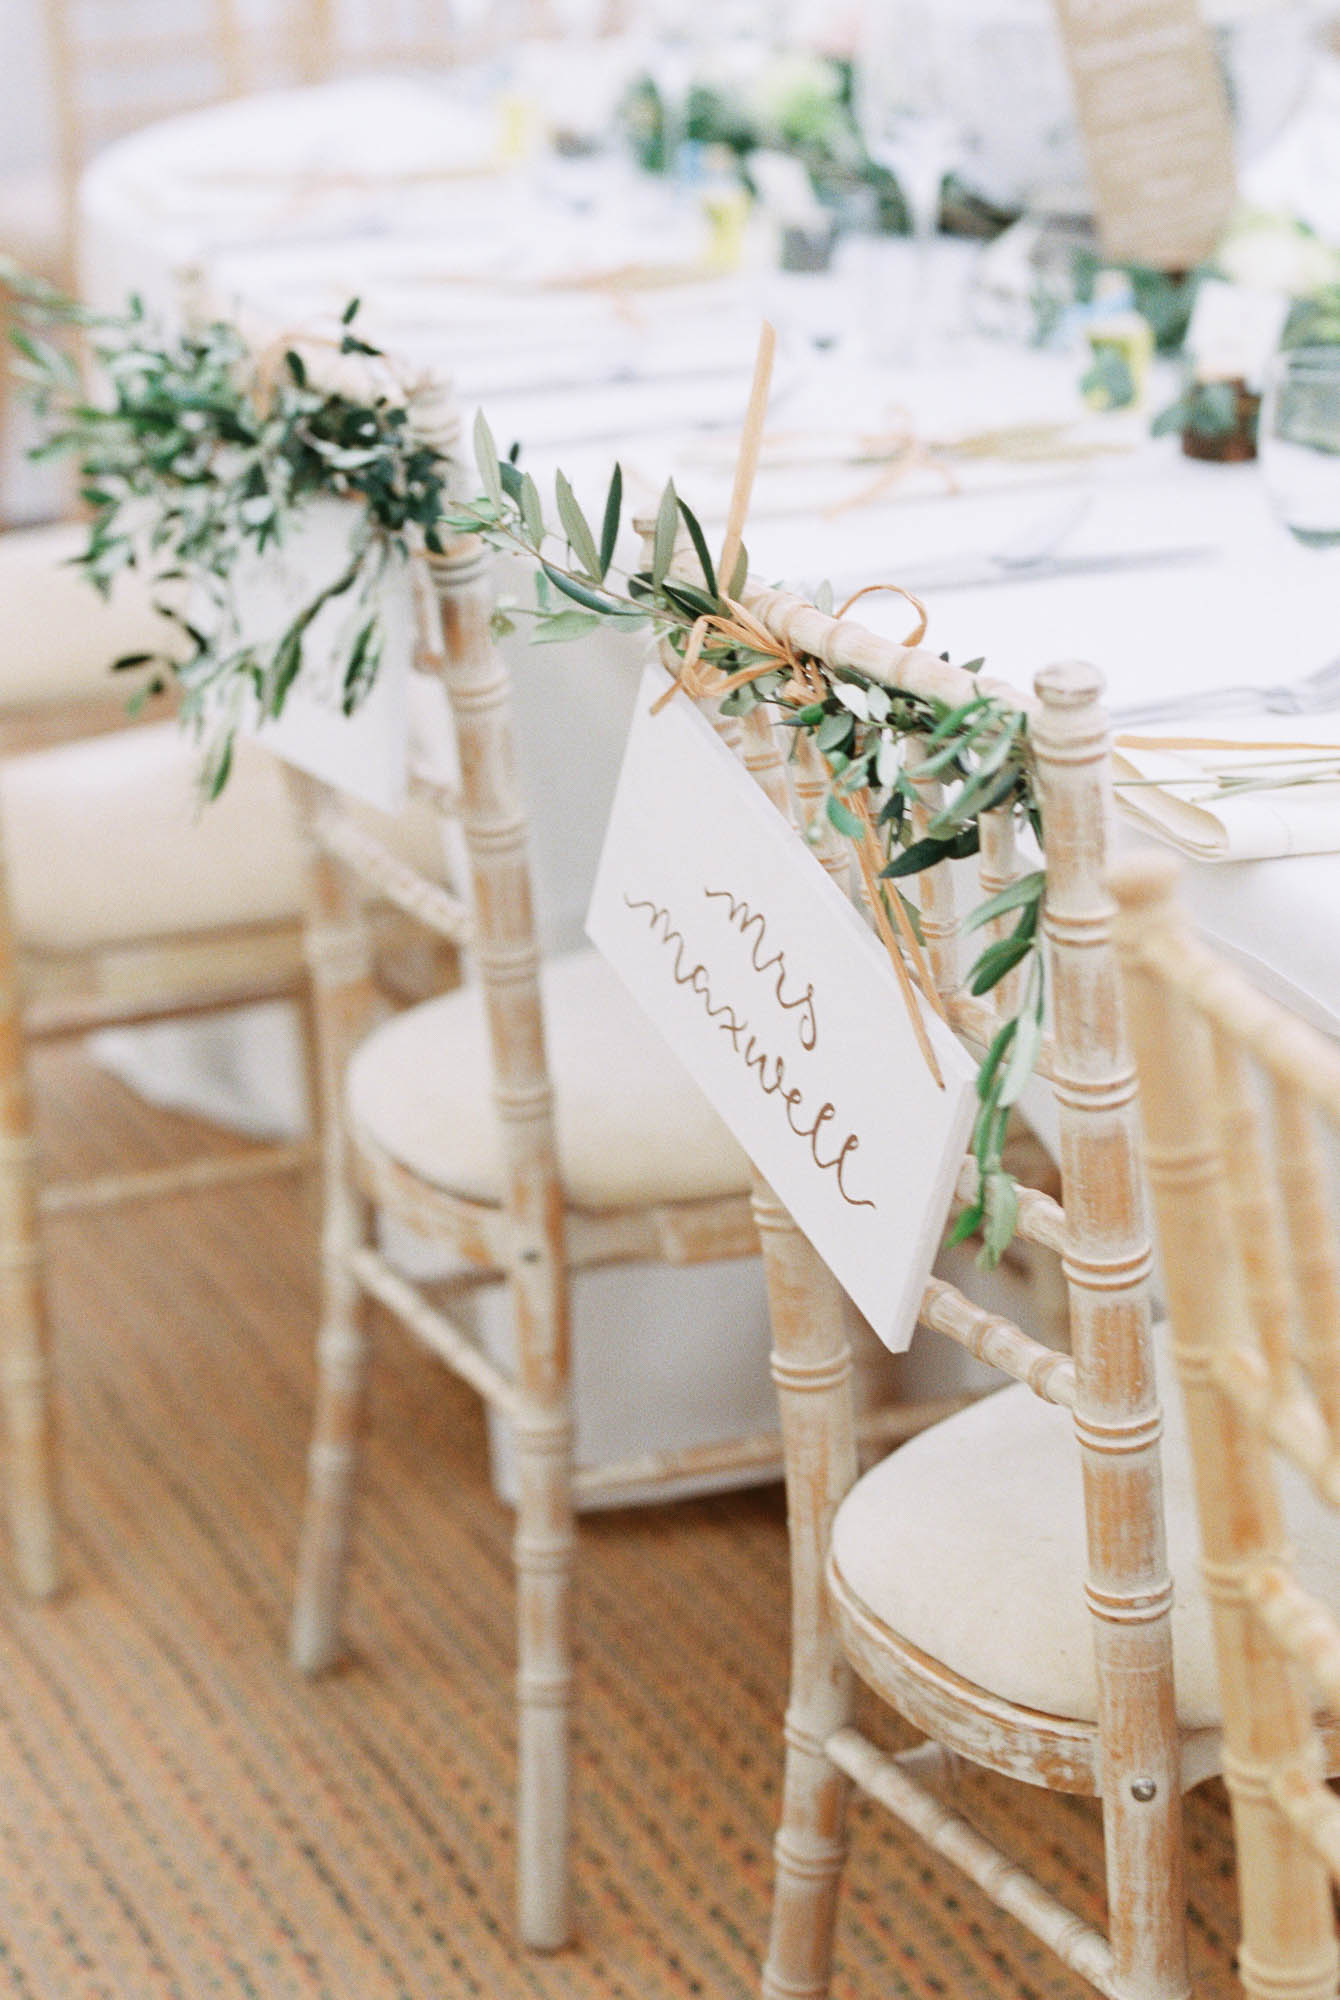 Personalised name signs on bride and groom chairs